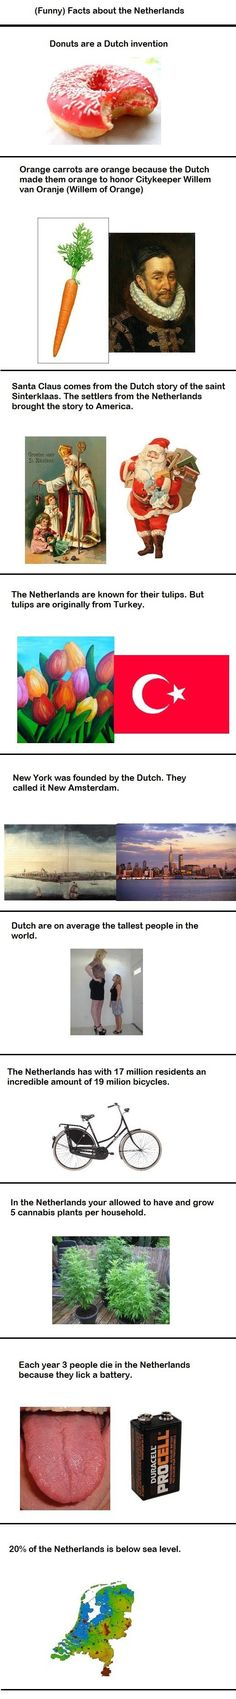 Gotta love the Dutch // funny pictures - funny photos - funny images - funny pics - funny quotes - #lol #humor #funnypictures